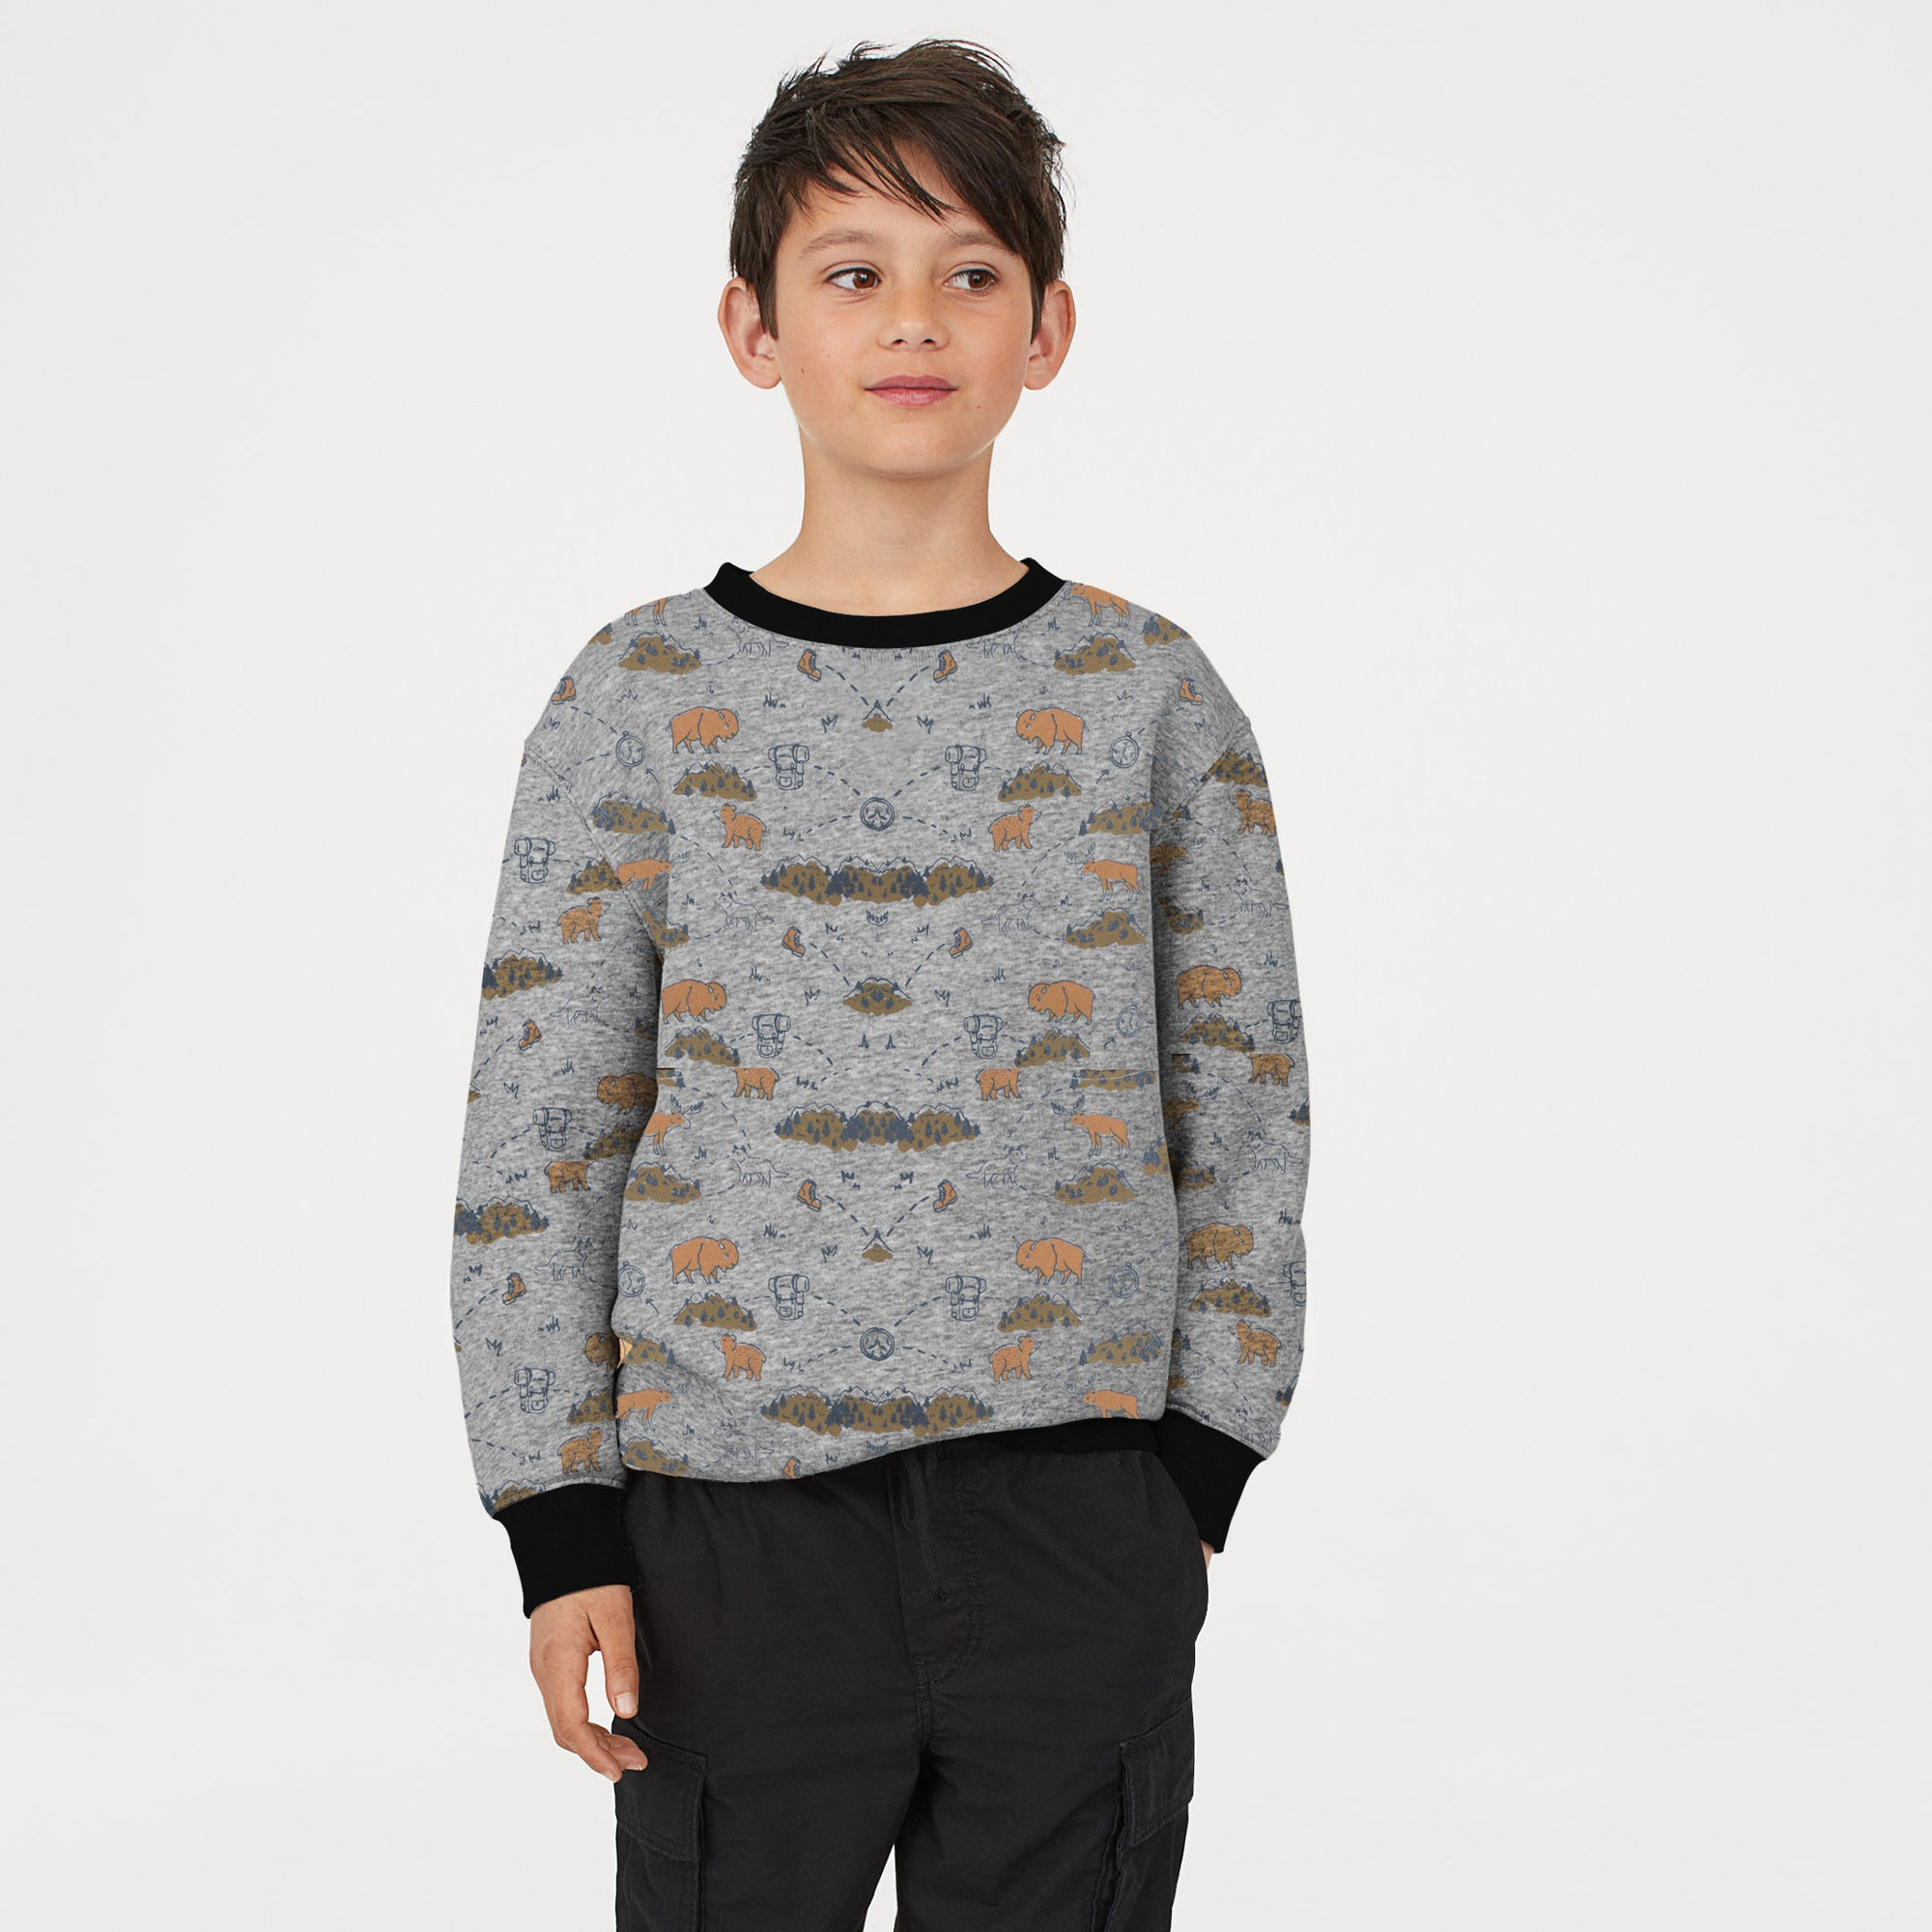 Tommy Hilfiger Terry Fleece Crew Neck Sweatshirt For Kids-Allover Print-SP808